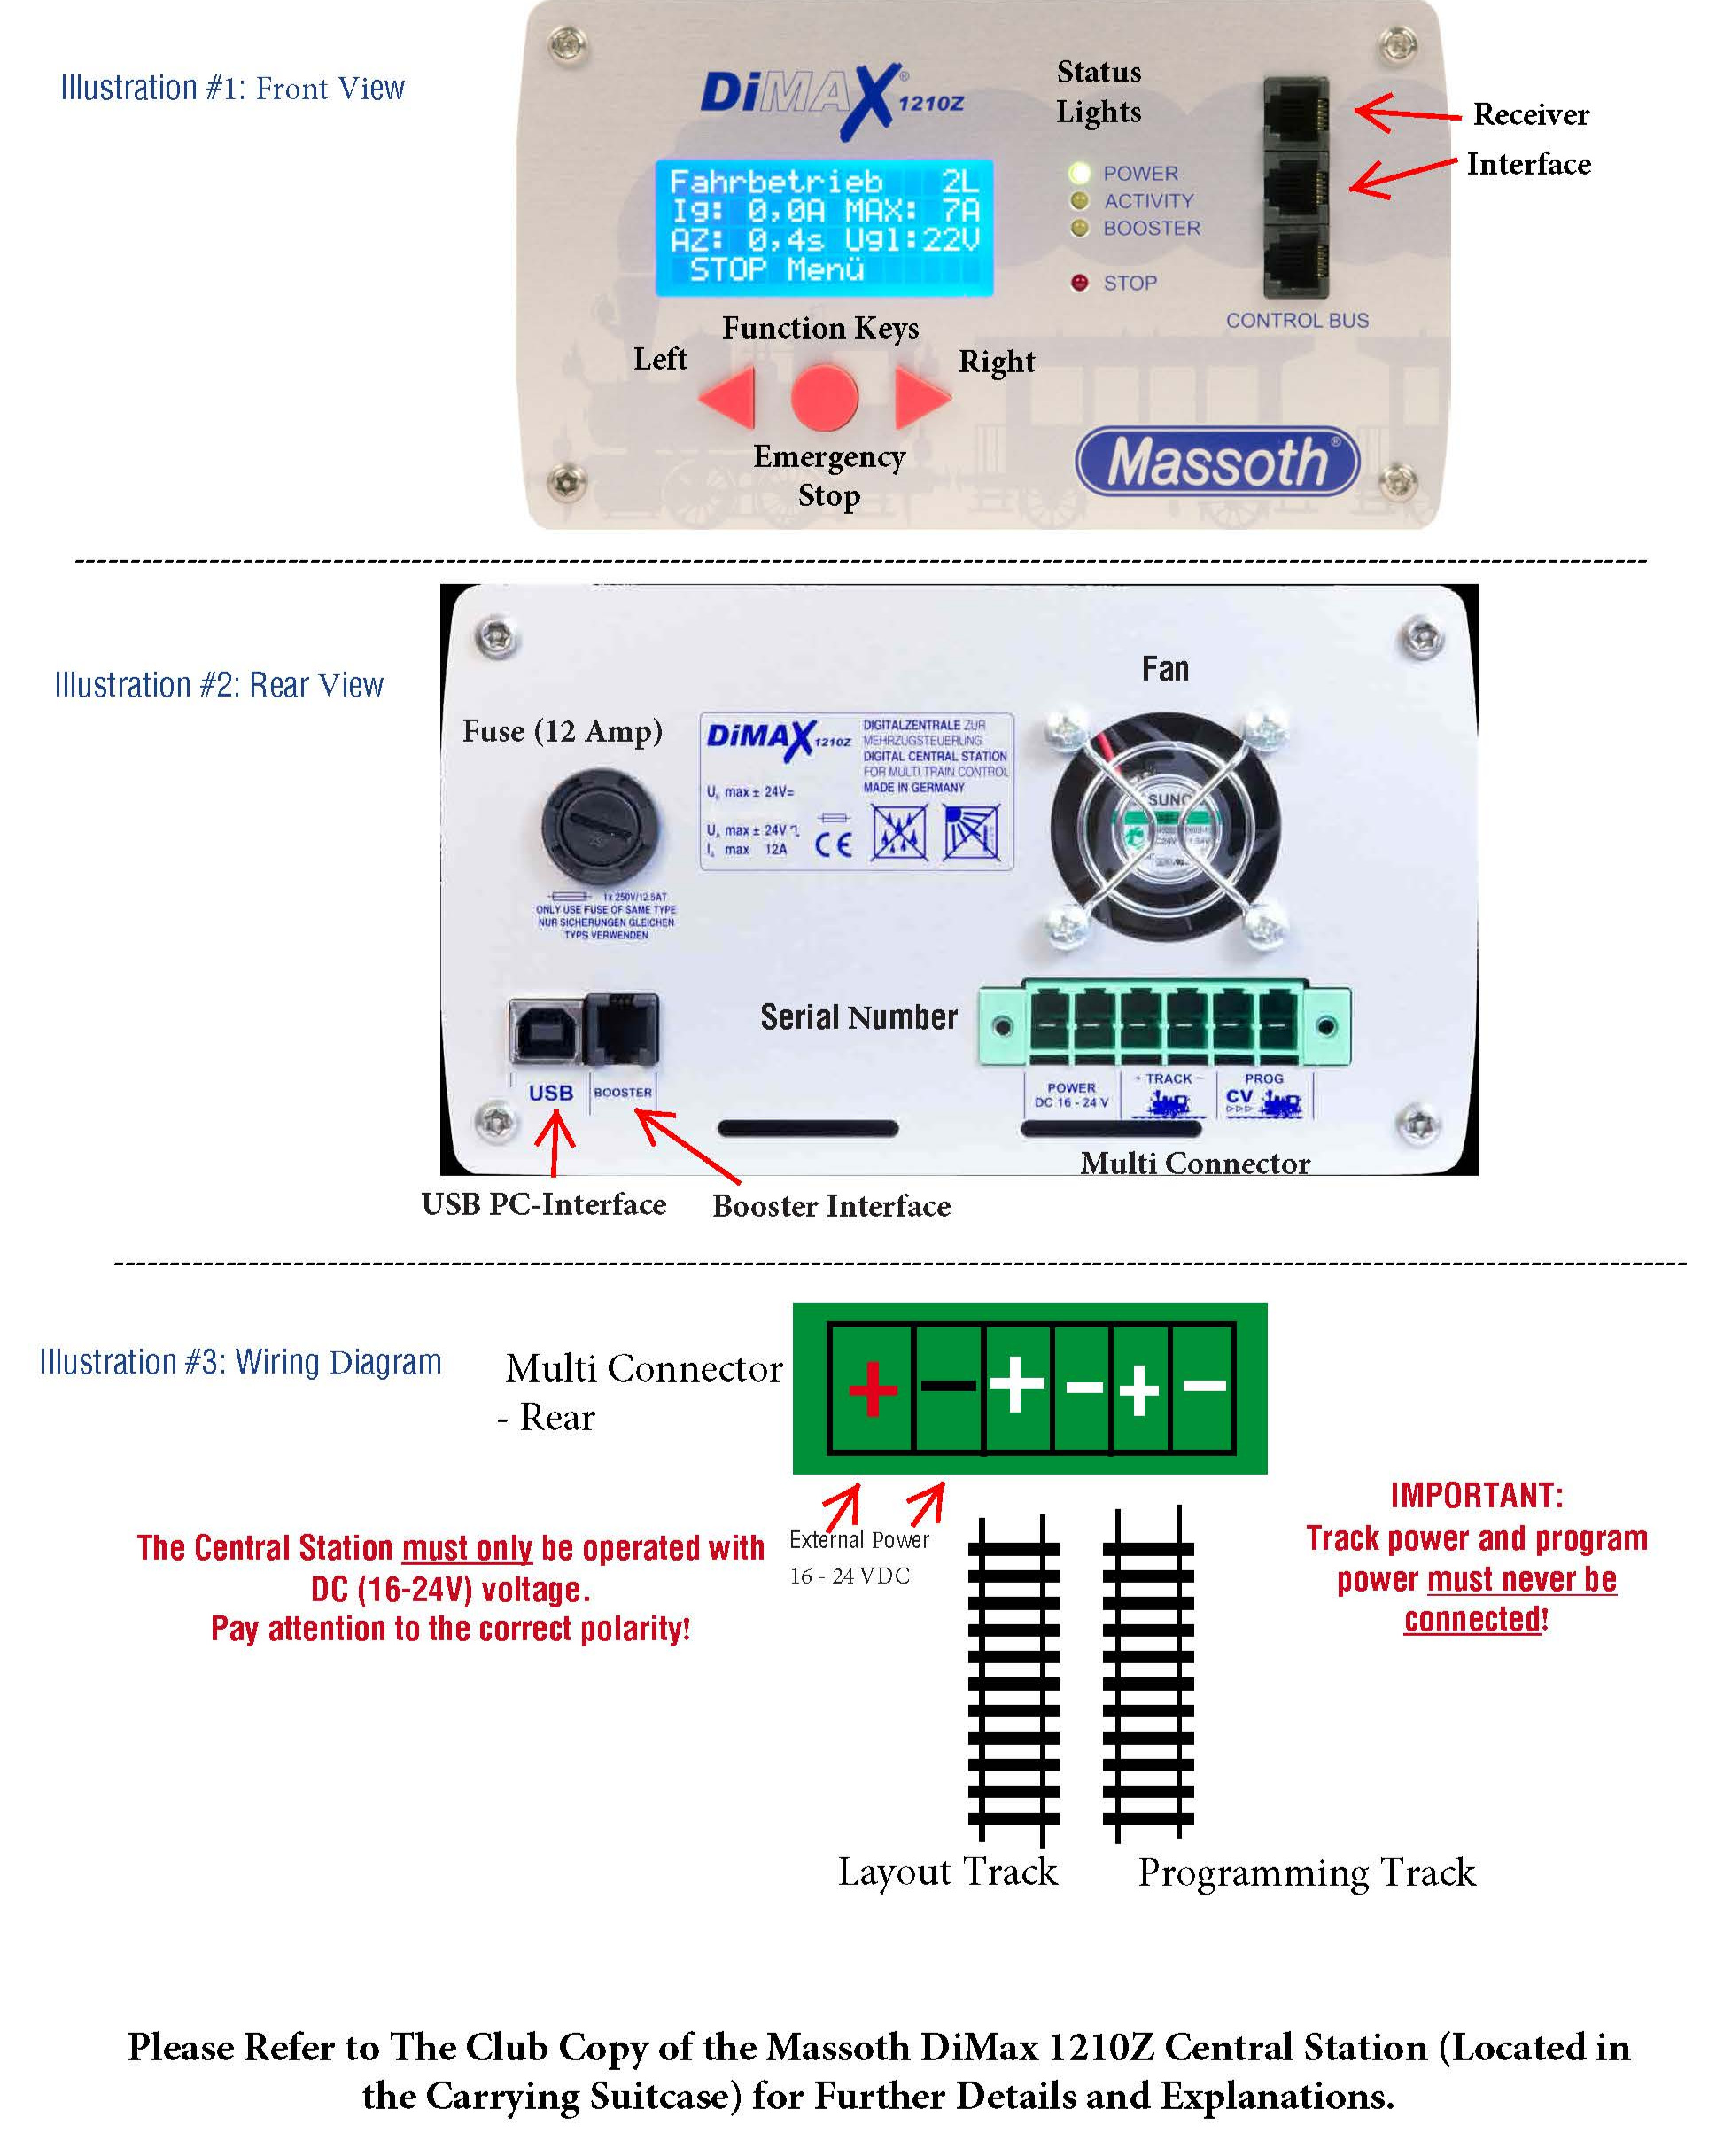 Massoth DiMax 1210Z Central Station Reference Guide